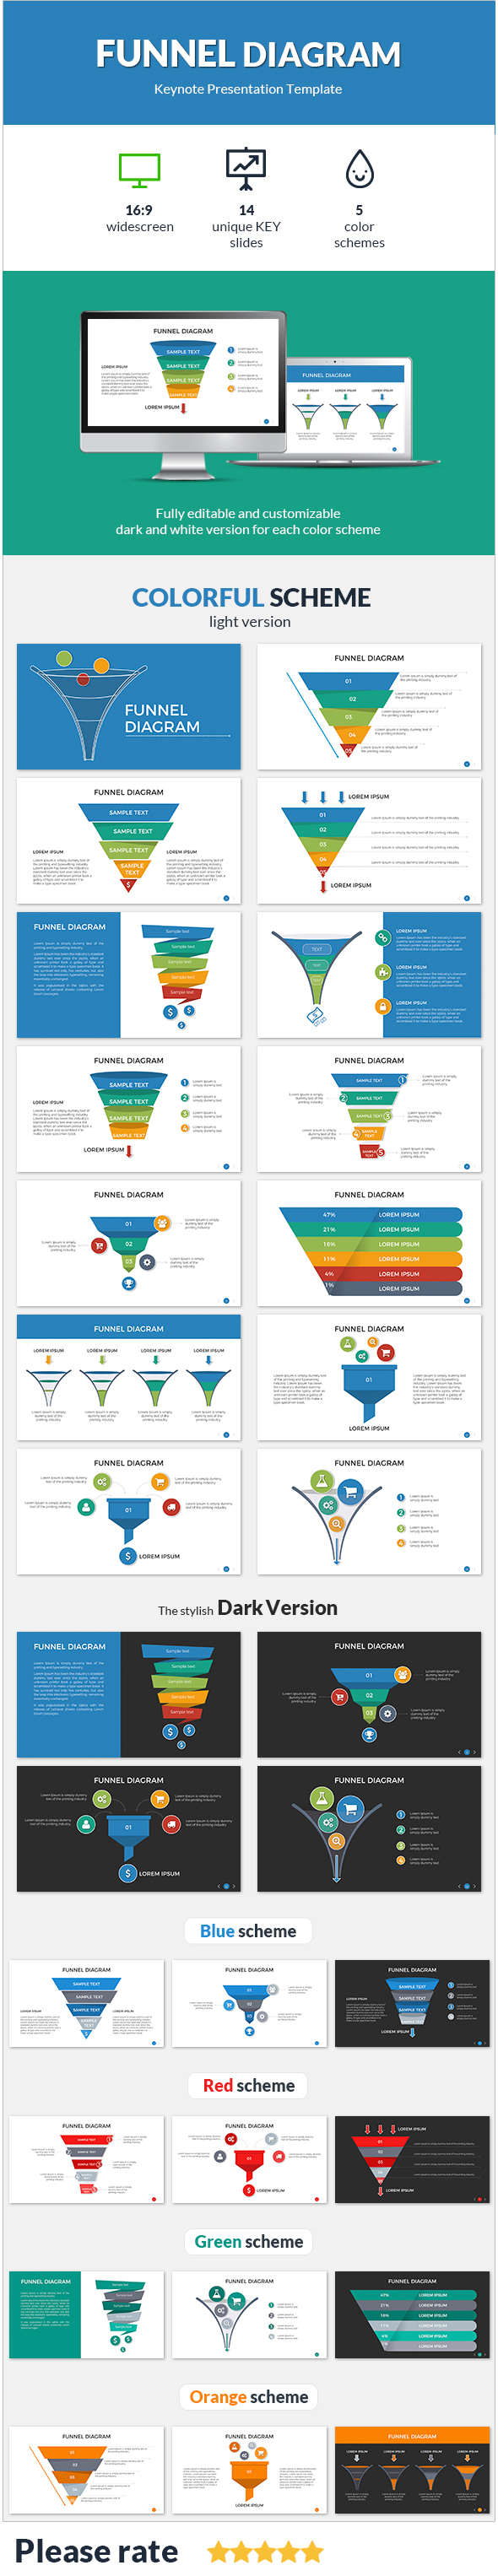 Funnel Diagram Keynote Presentation Template - Keynote Templates Presentation Templates